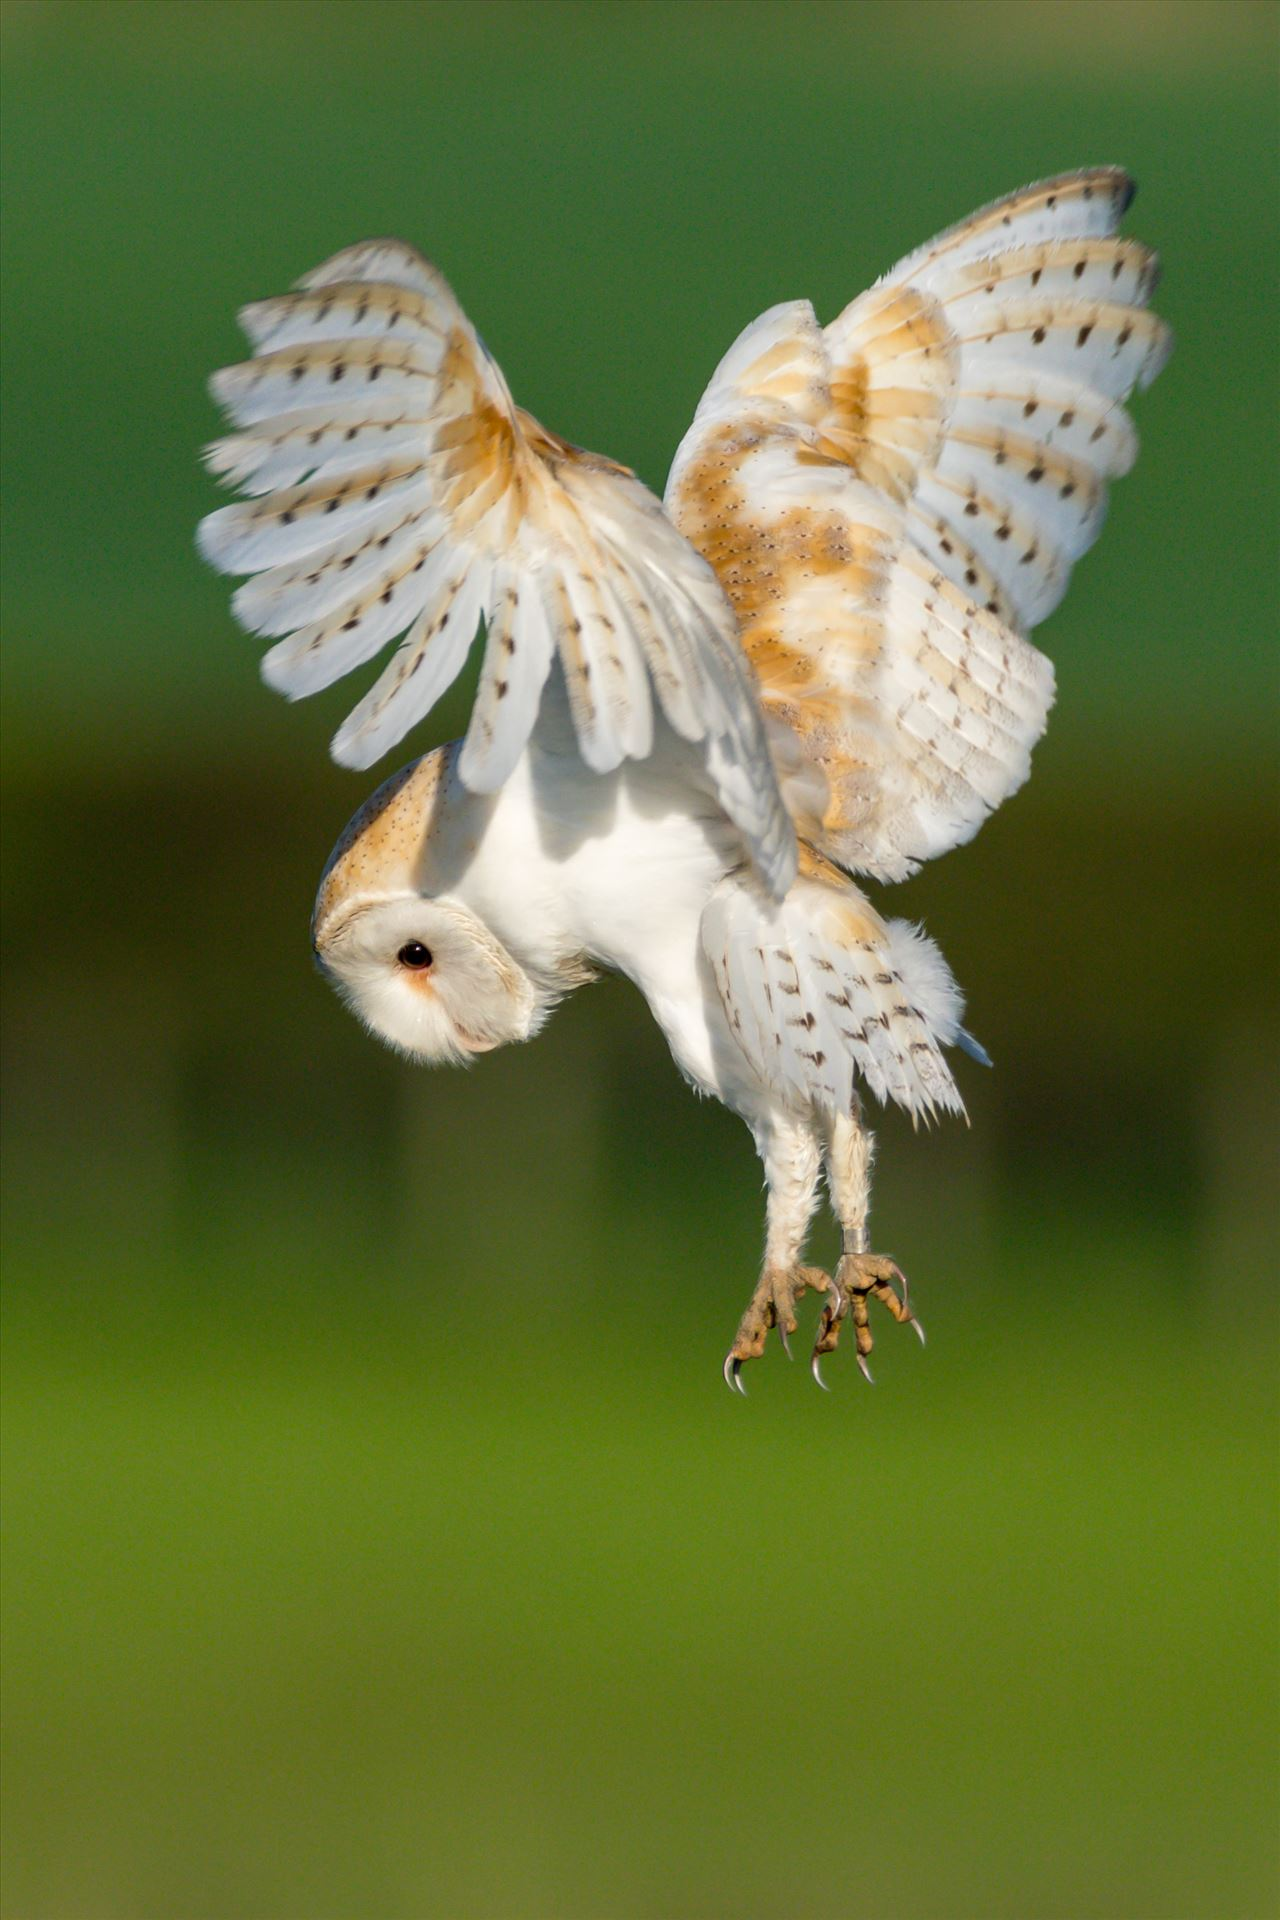 Barn Owl on the hunt 01 - A Barn Owl on the hunt for its breakfast by AJ Stoves Photography